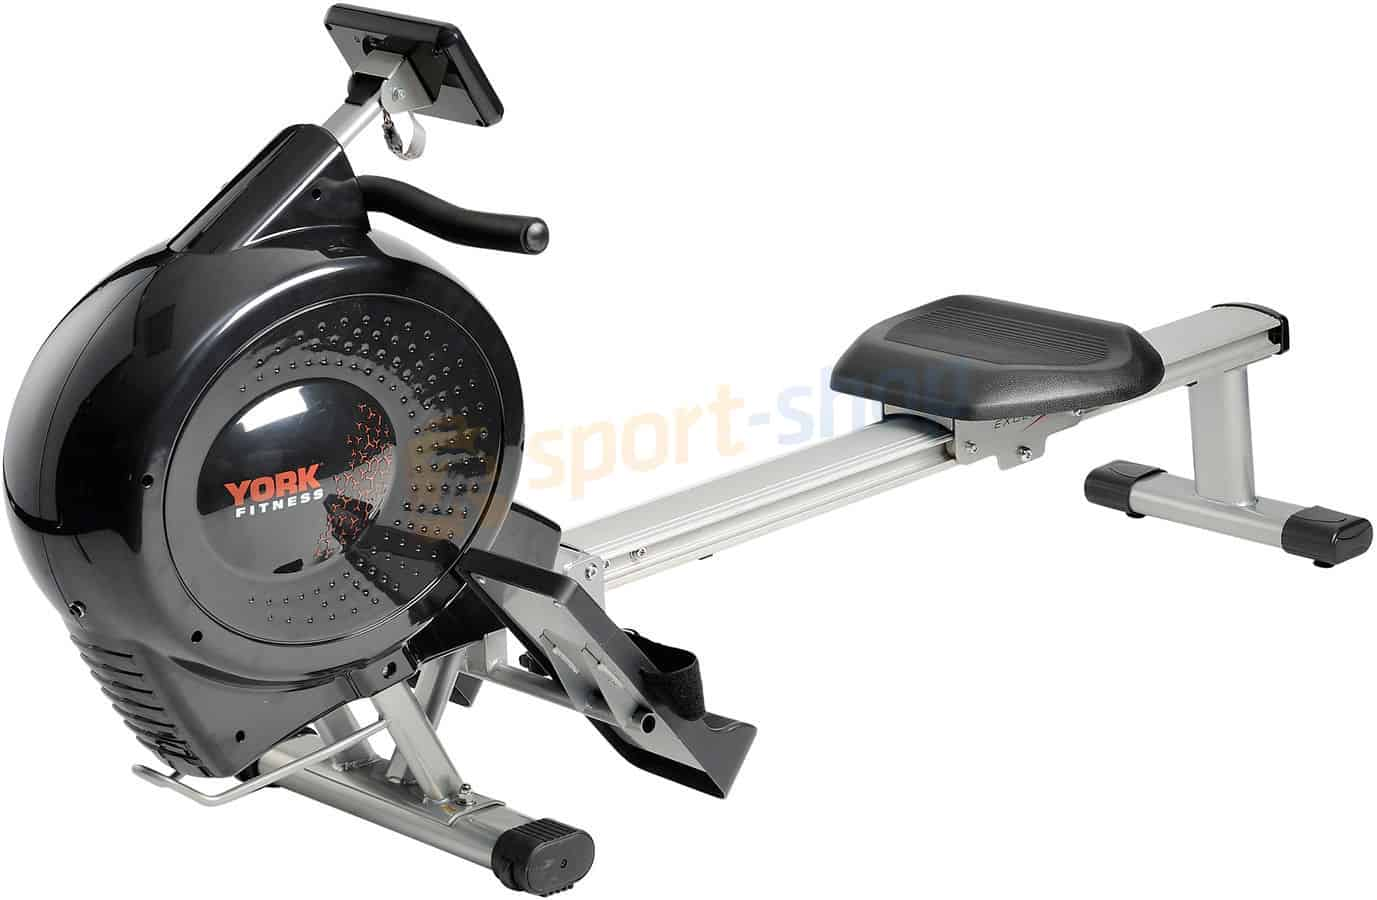 york excel 310 rowing machine